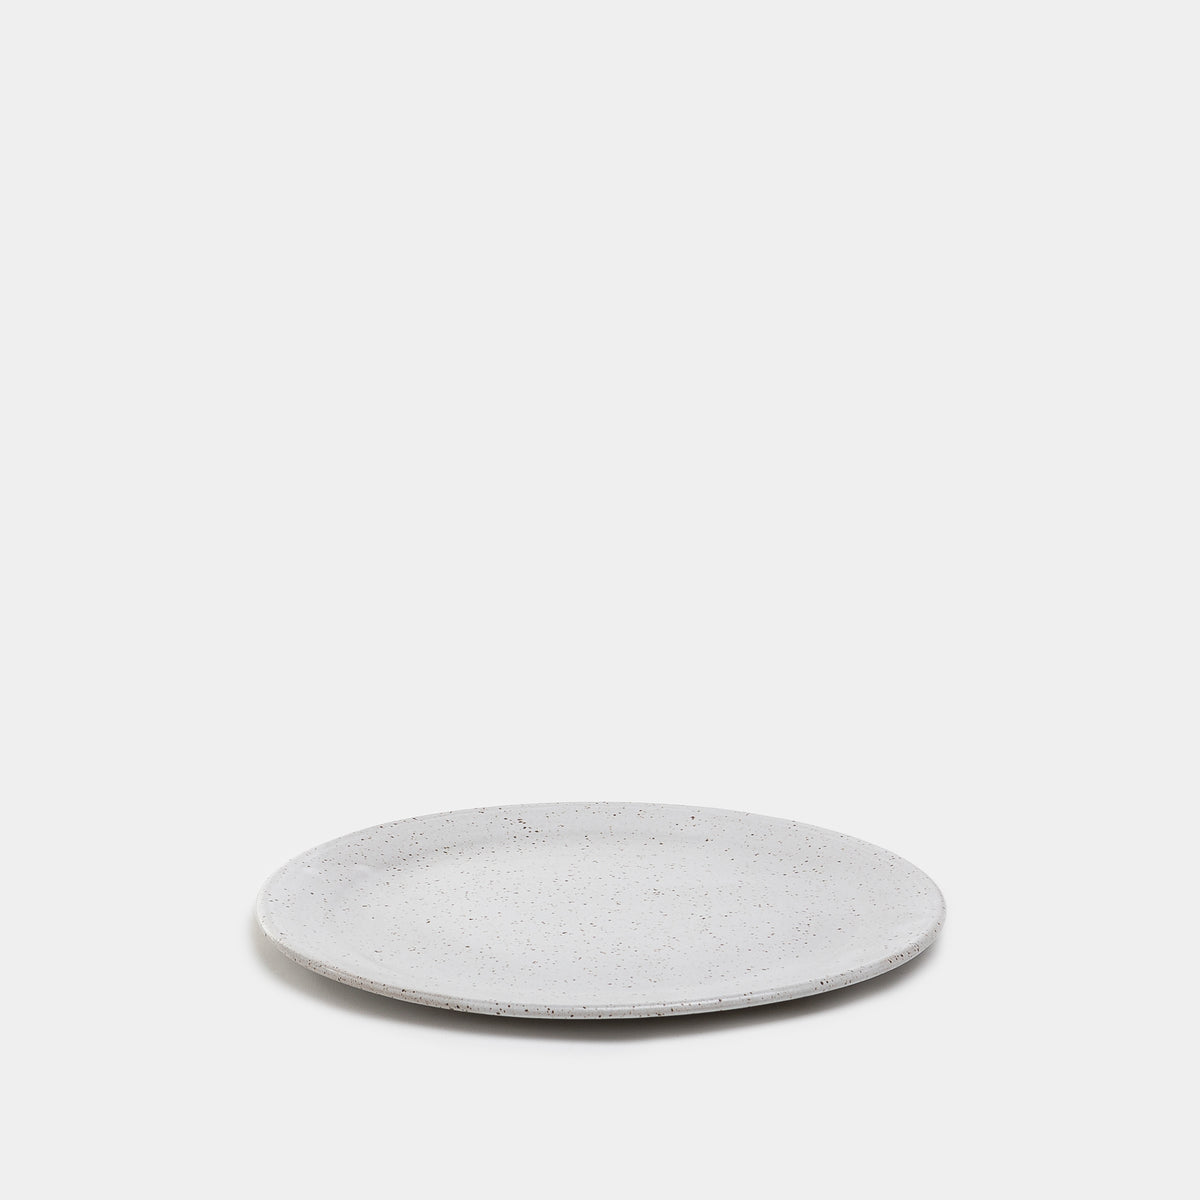 Load image into Gallery viewer, Dinner Plate in Speckled Stone by Meghan Flynn